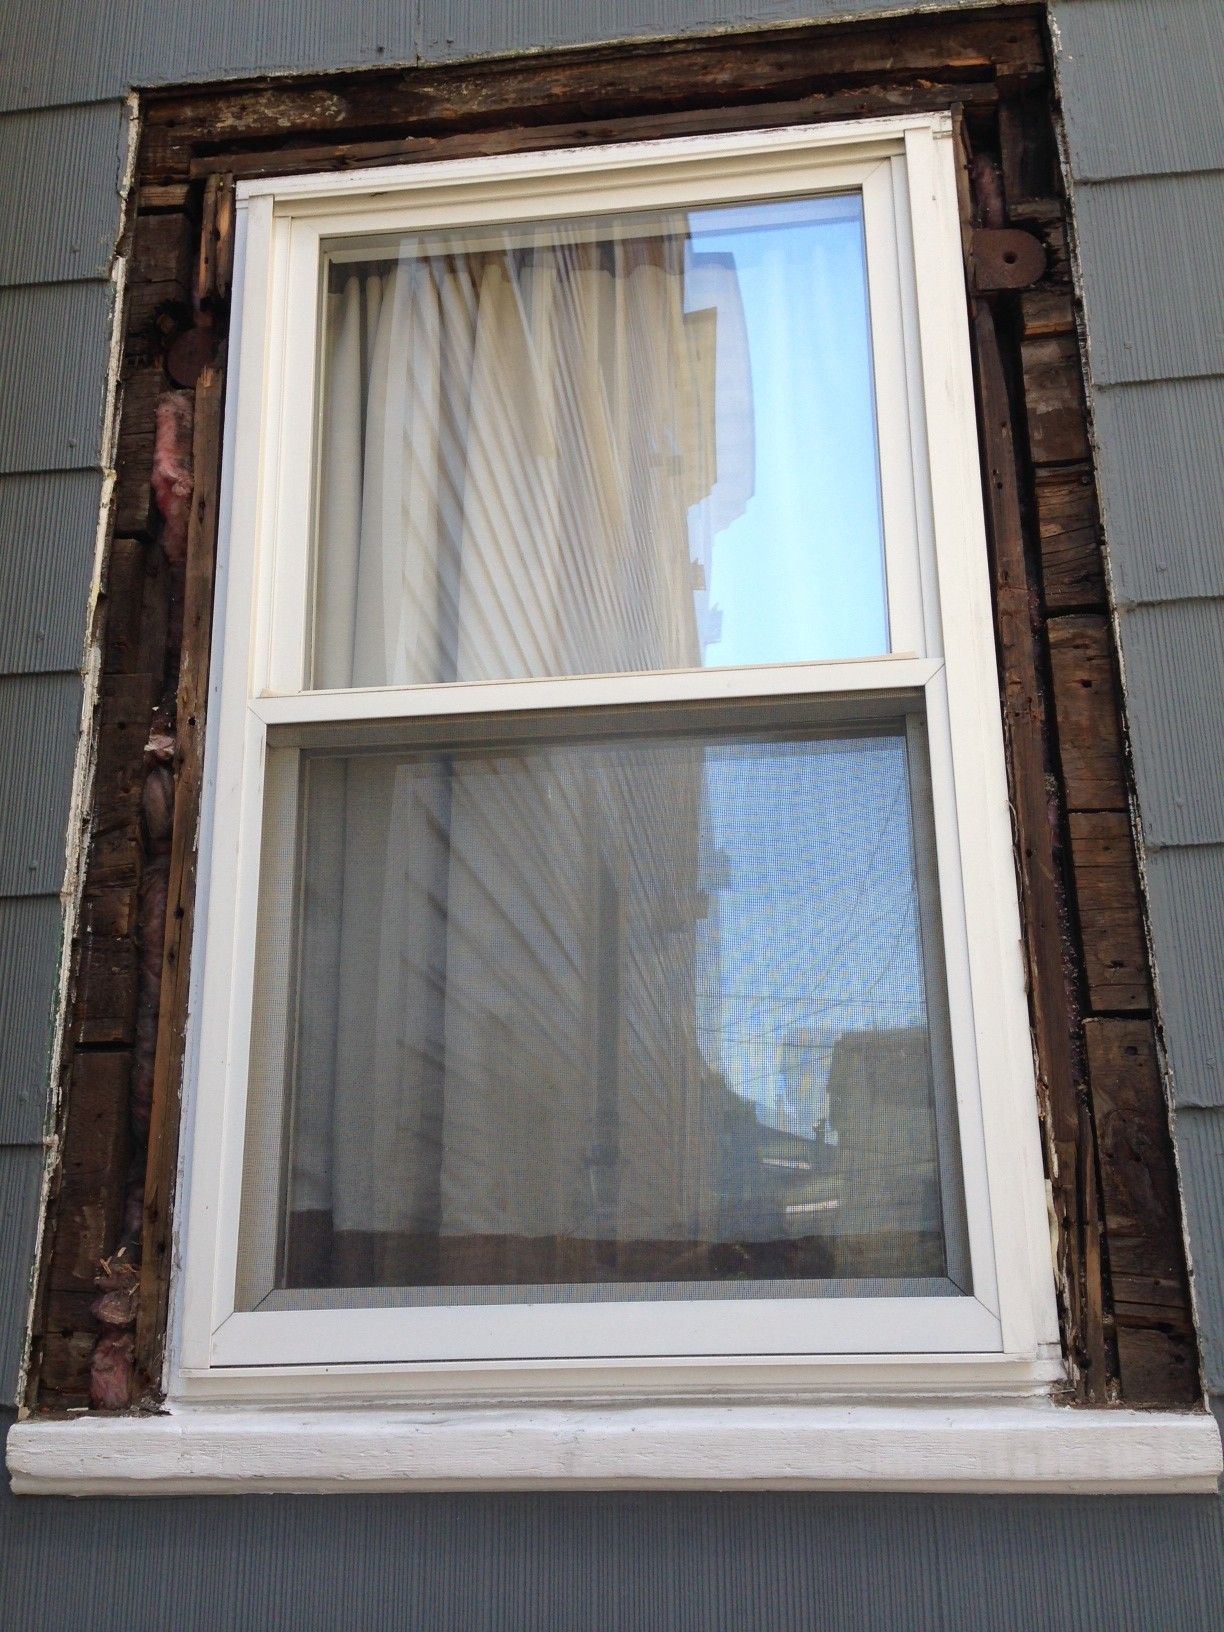 How to install window flashing tape - Here S How The Window Looked Without Any Trim Note The Boards As Sheathing